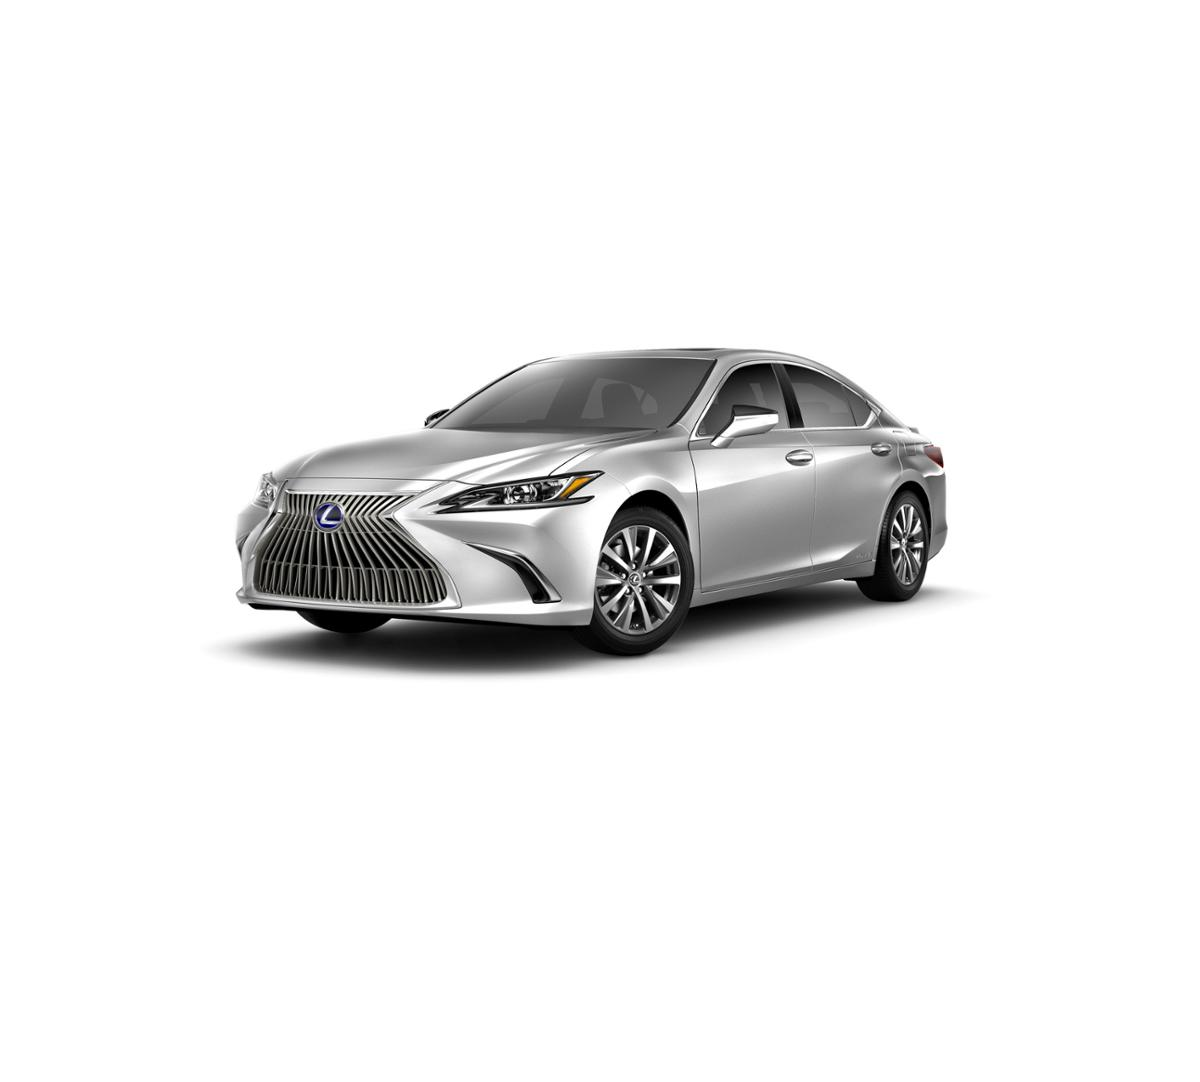 2019 Lexus ES 300h Vehicle Photo in Sacramento, CA 95821